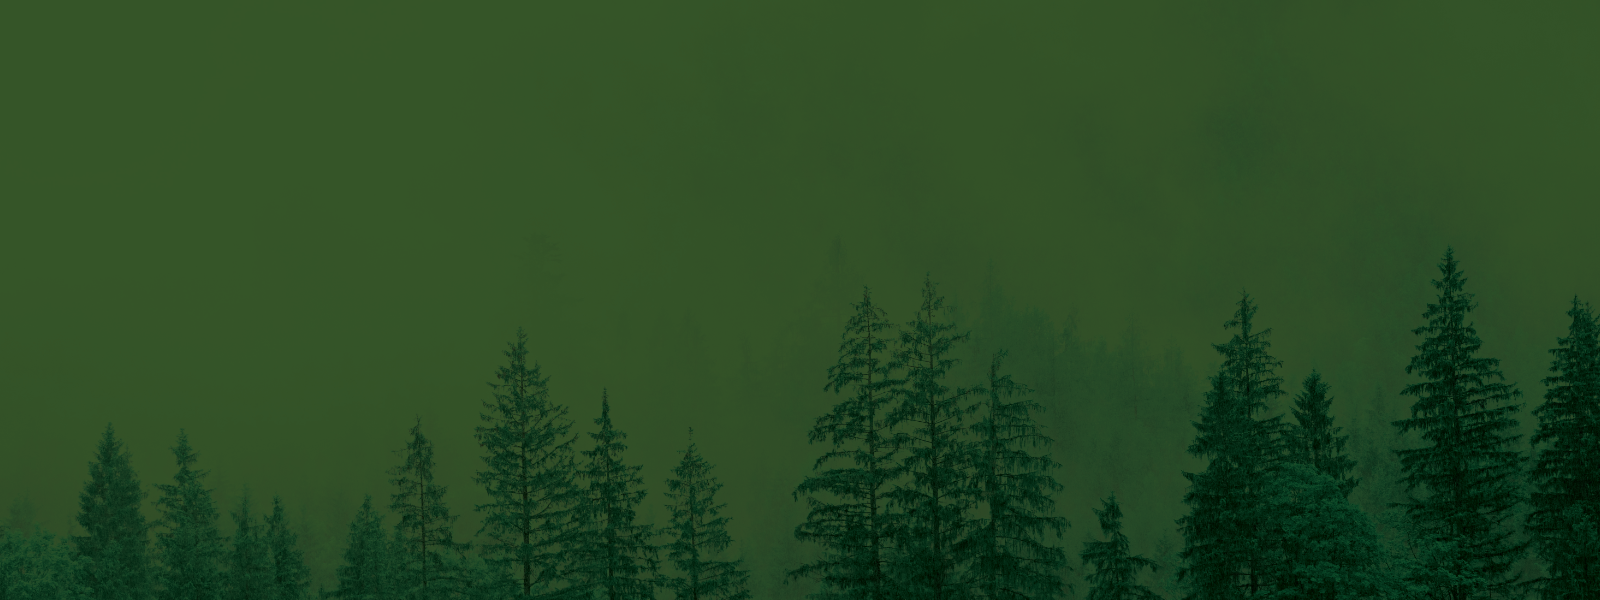 background image of trees